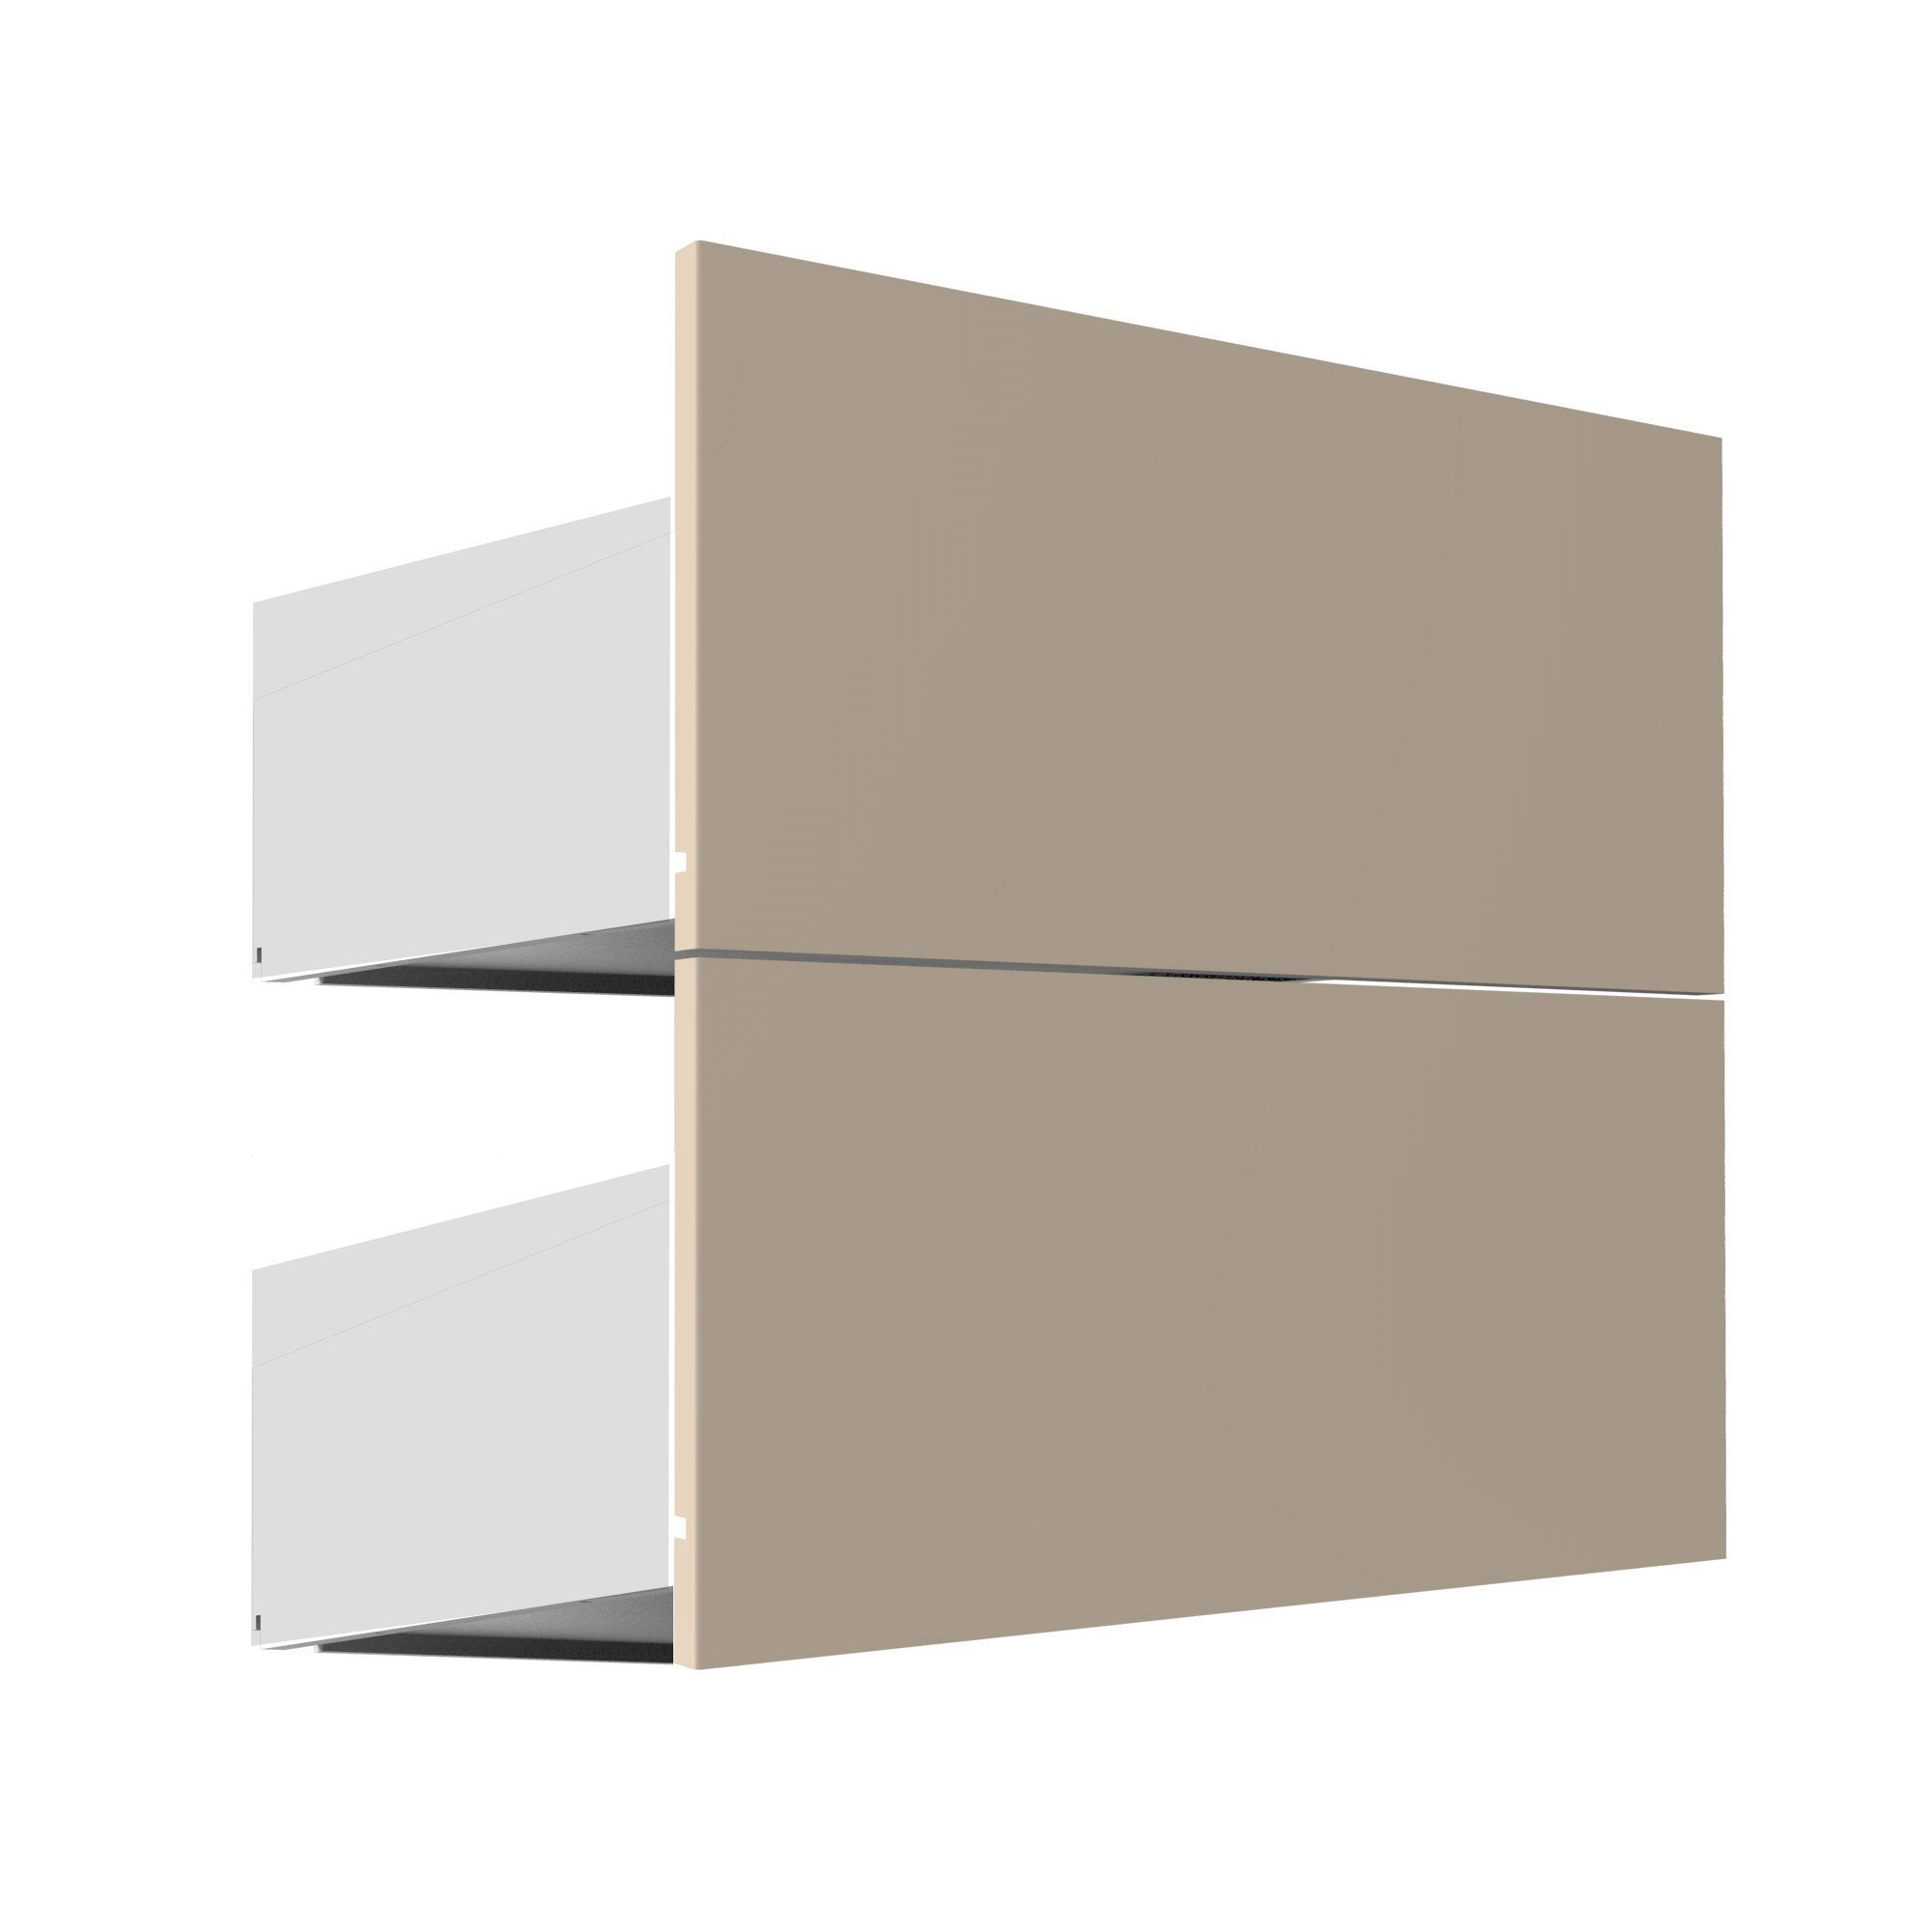 Darwin Modular Cream & Gloss External Drawers (h)237mm (w)500mm (d)566mm